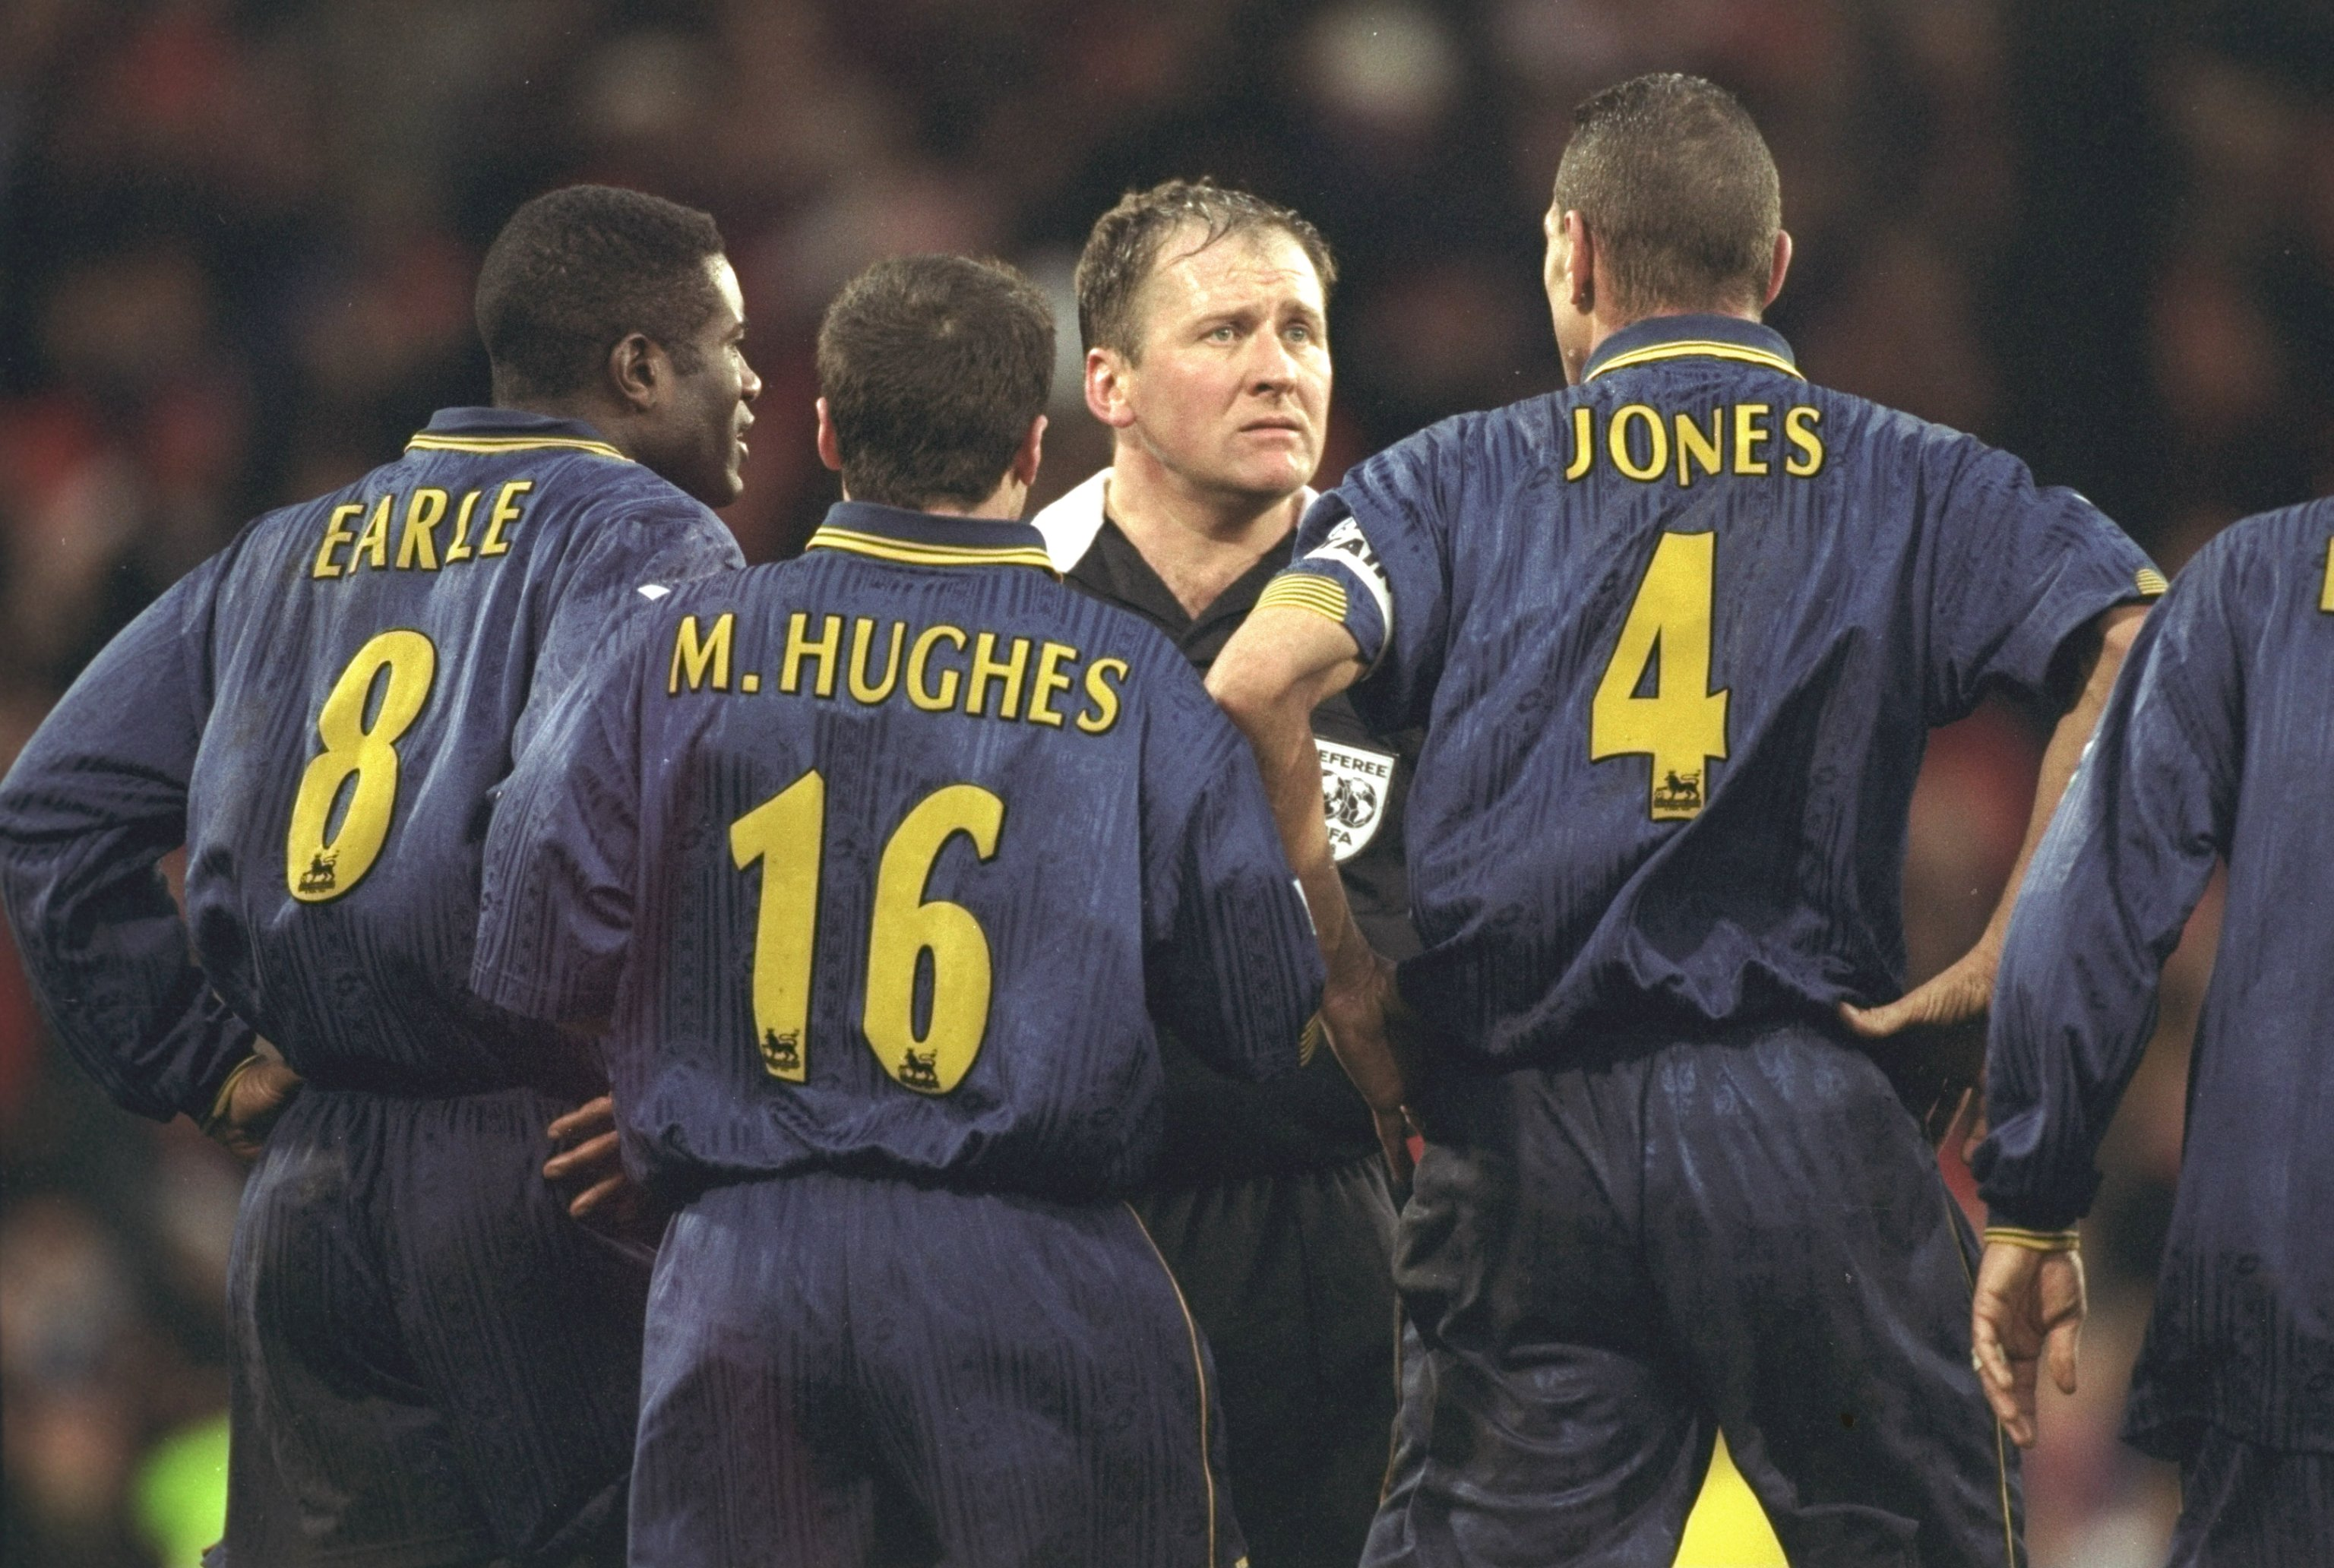 4 Jan 1998:  (left to right) Robbie Earle, Michael Hughes and Vinny Jones of Wimbledon confront the referee, Steve Dunn, after having a goal disallowed due to the whistle going for full time during the FA Cup third round tie against Wrexham at Selhurst Pa